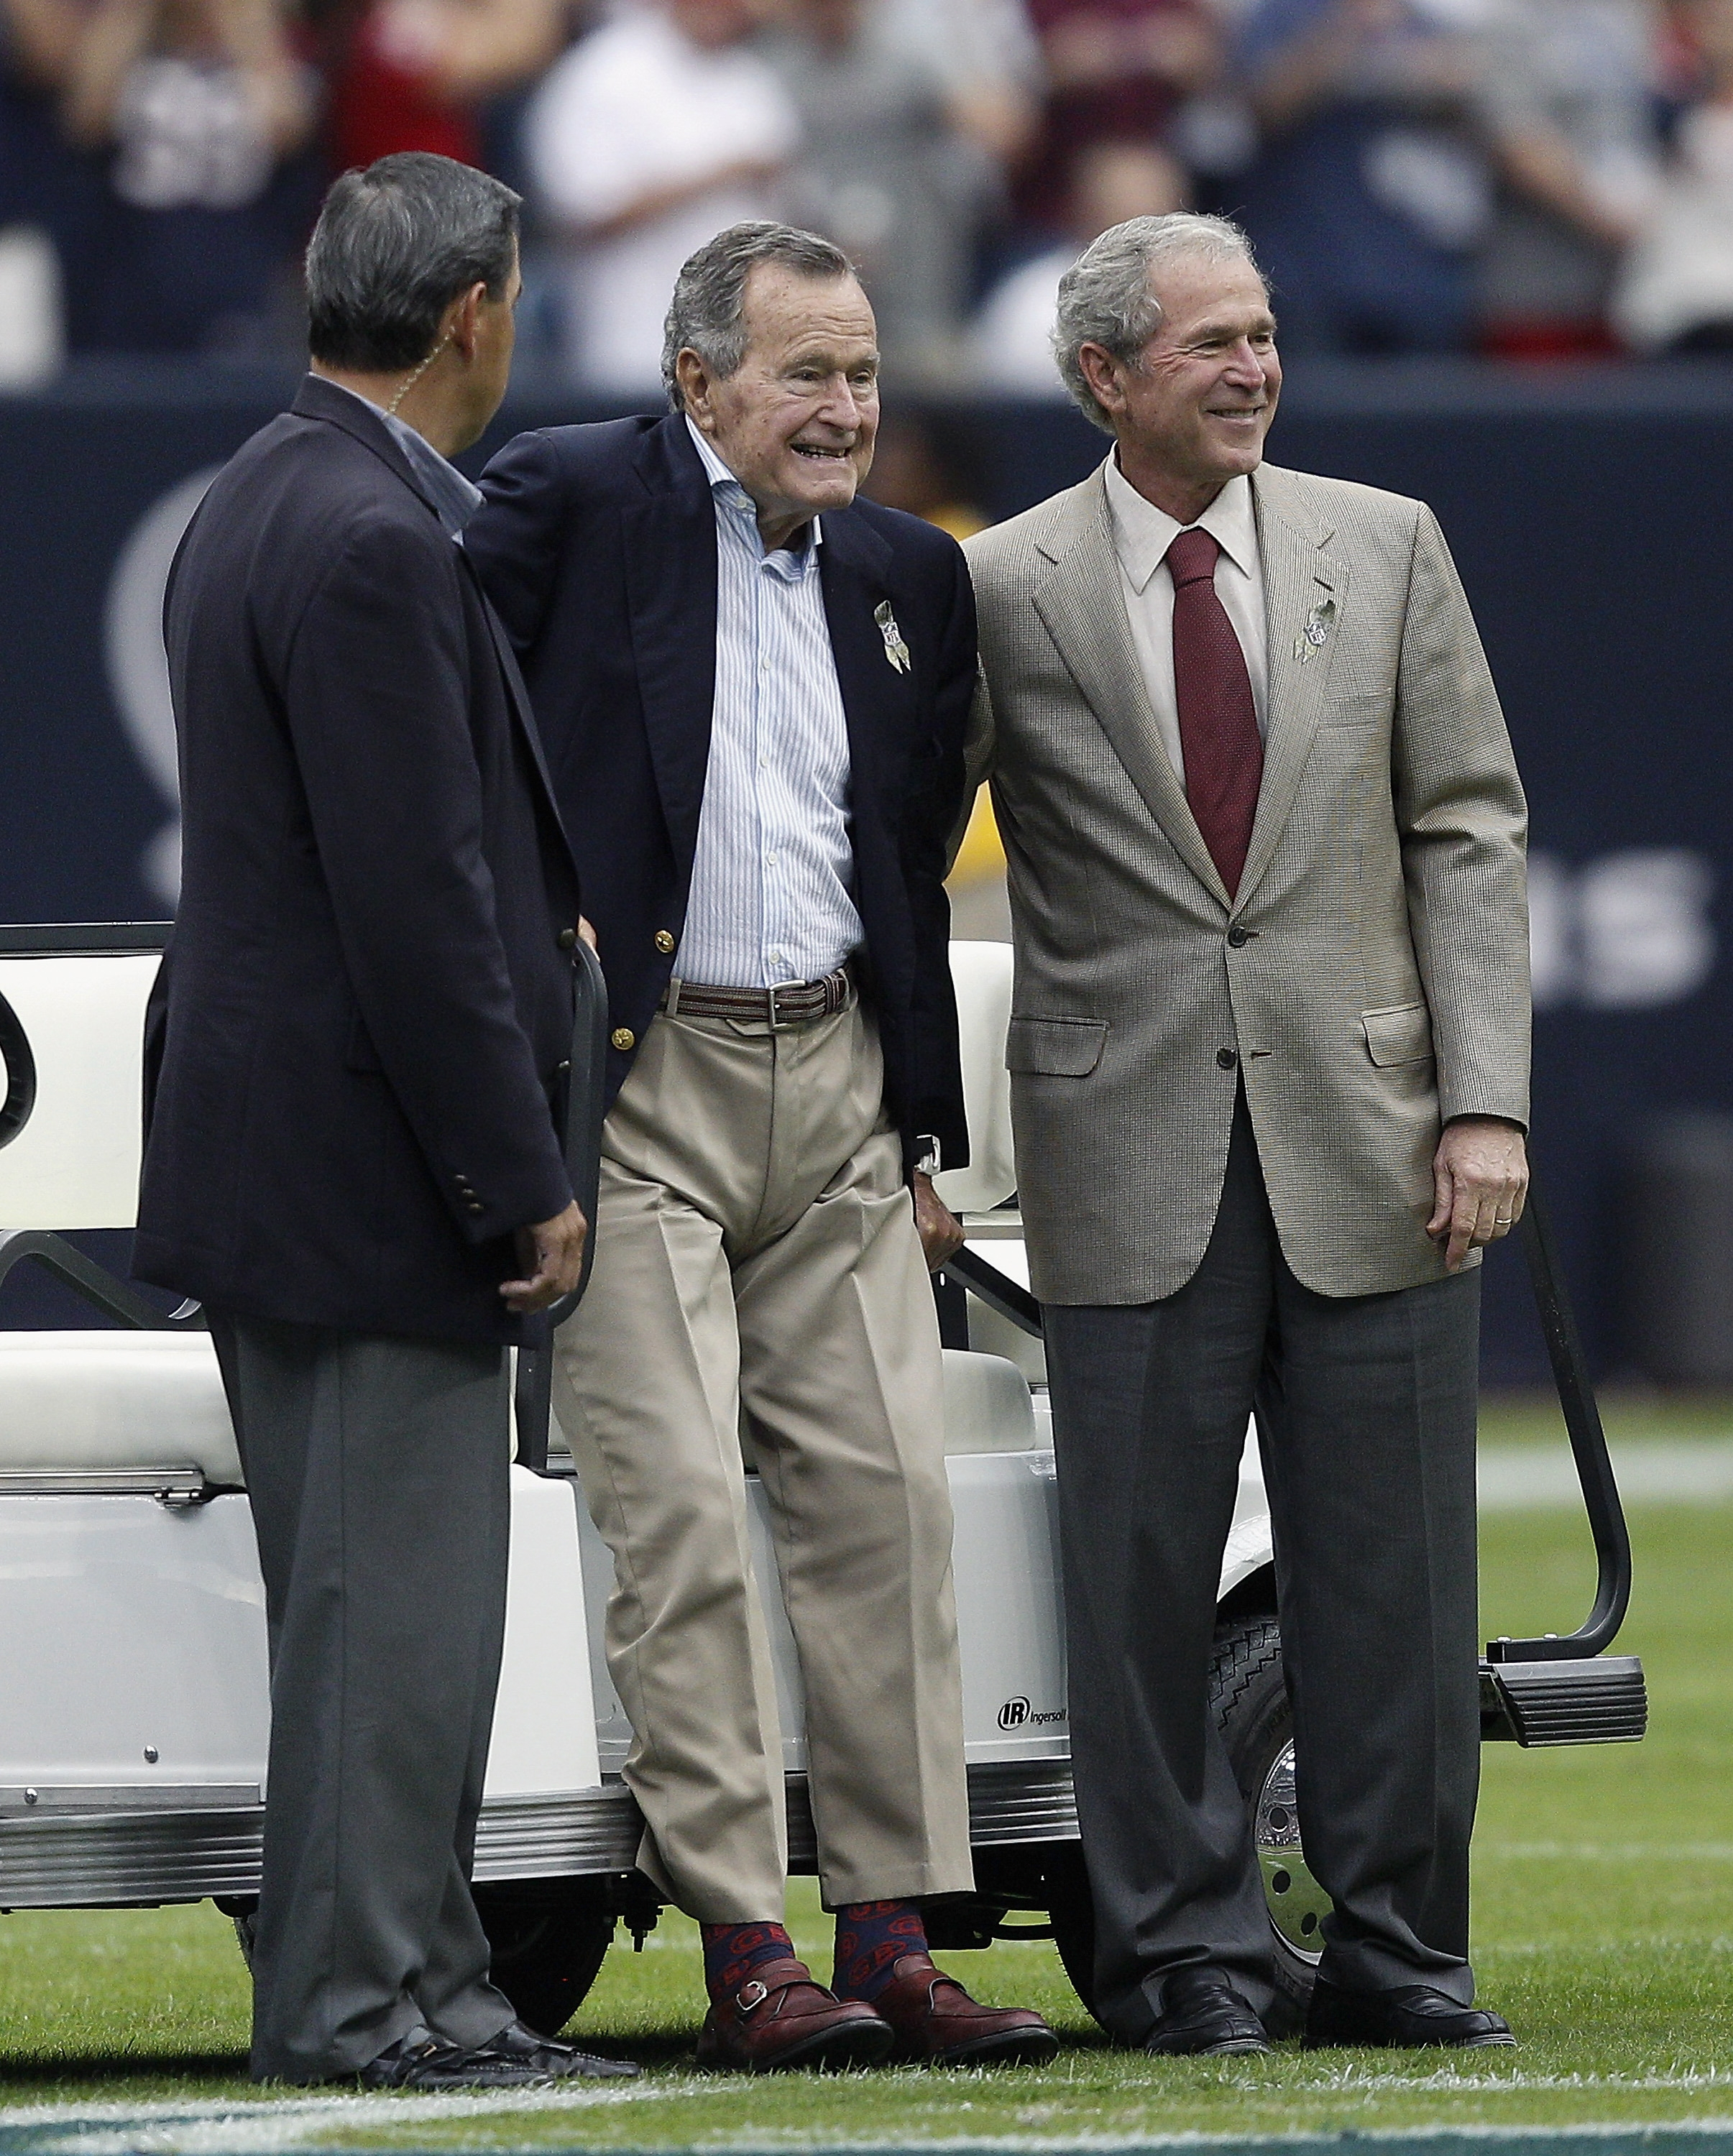 Father-son outing: Former Presidents George H.W. Bush, center, and George W. Bush, right, attended Sunday's game between the Oakland Raiders and Houston Texans in Houston.